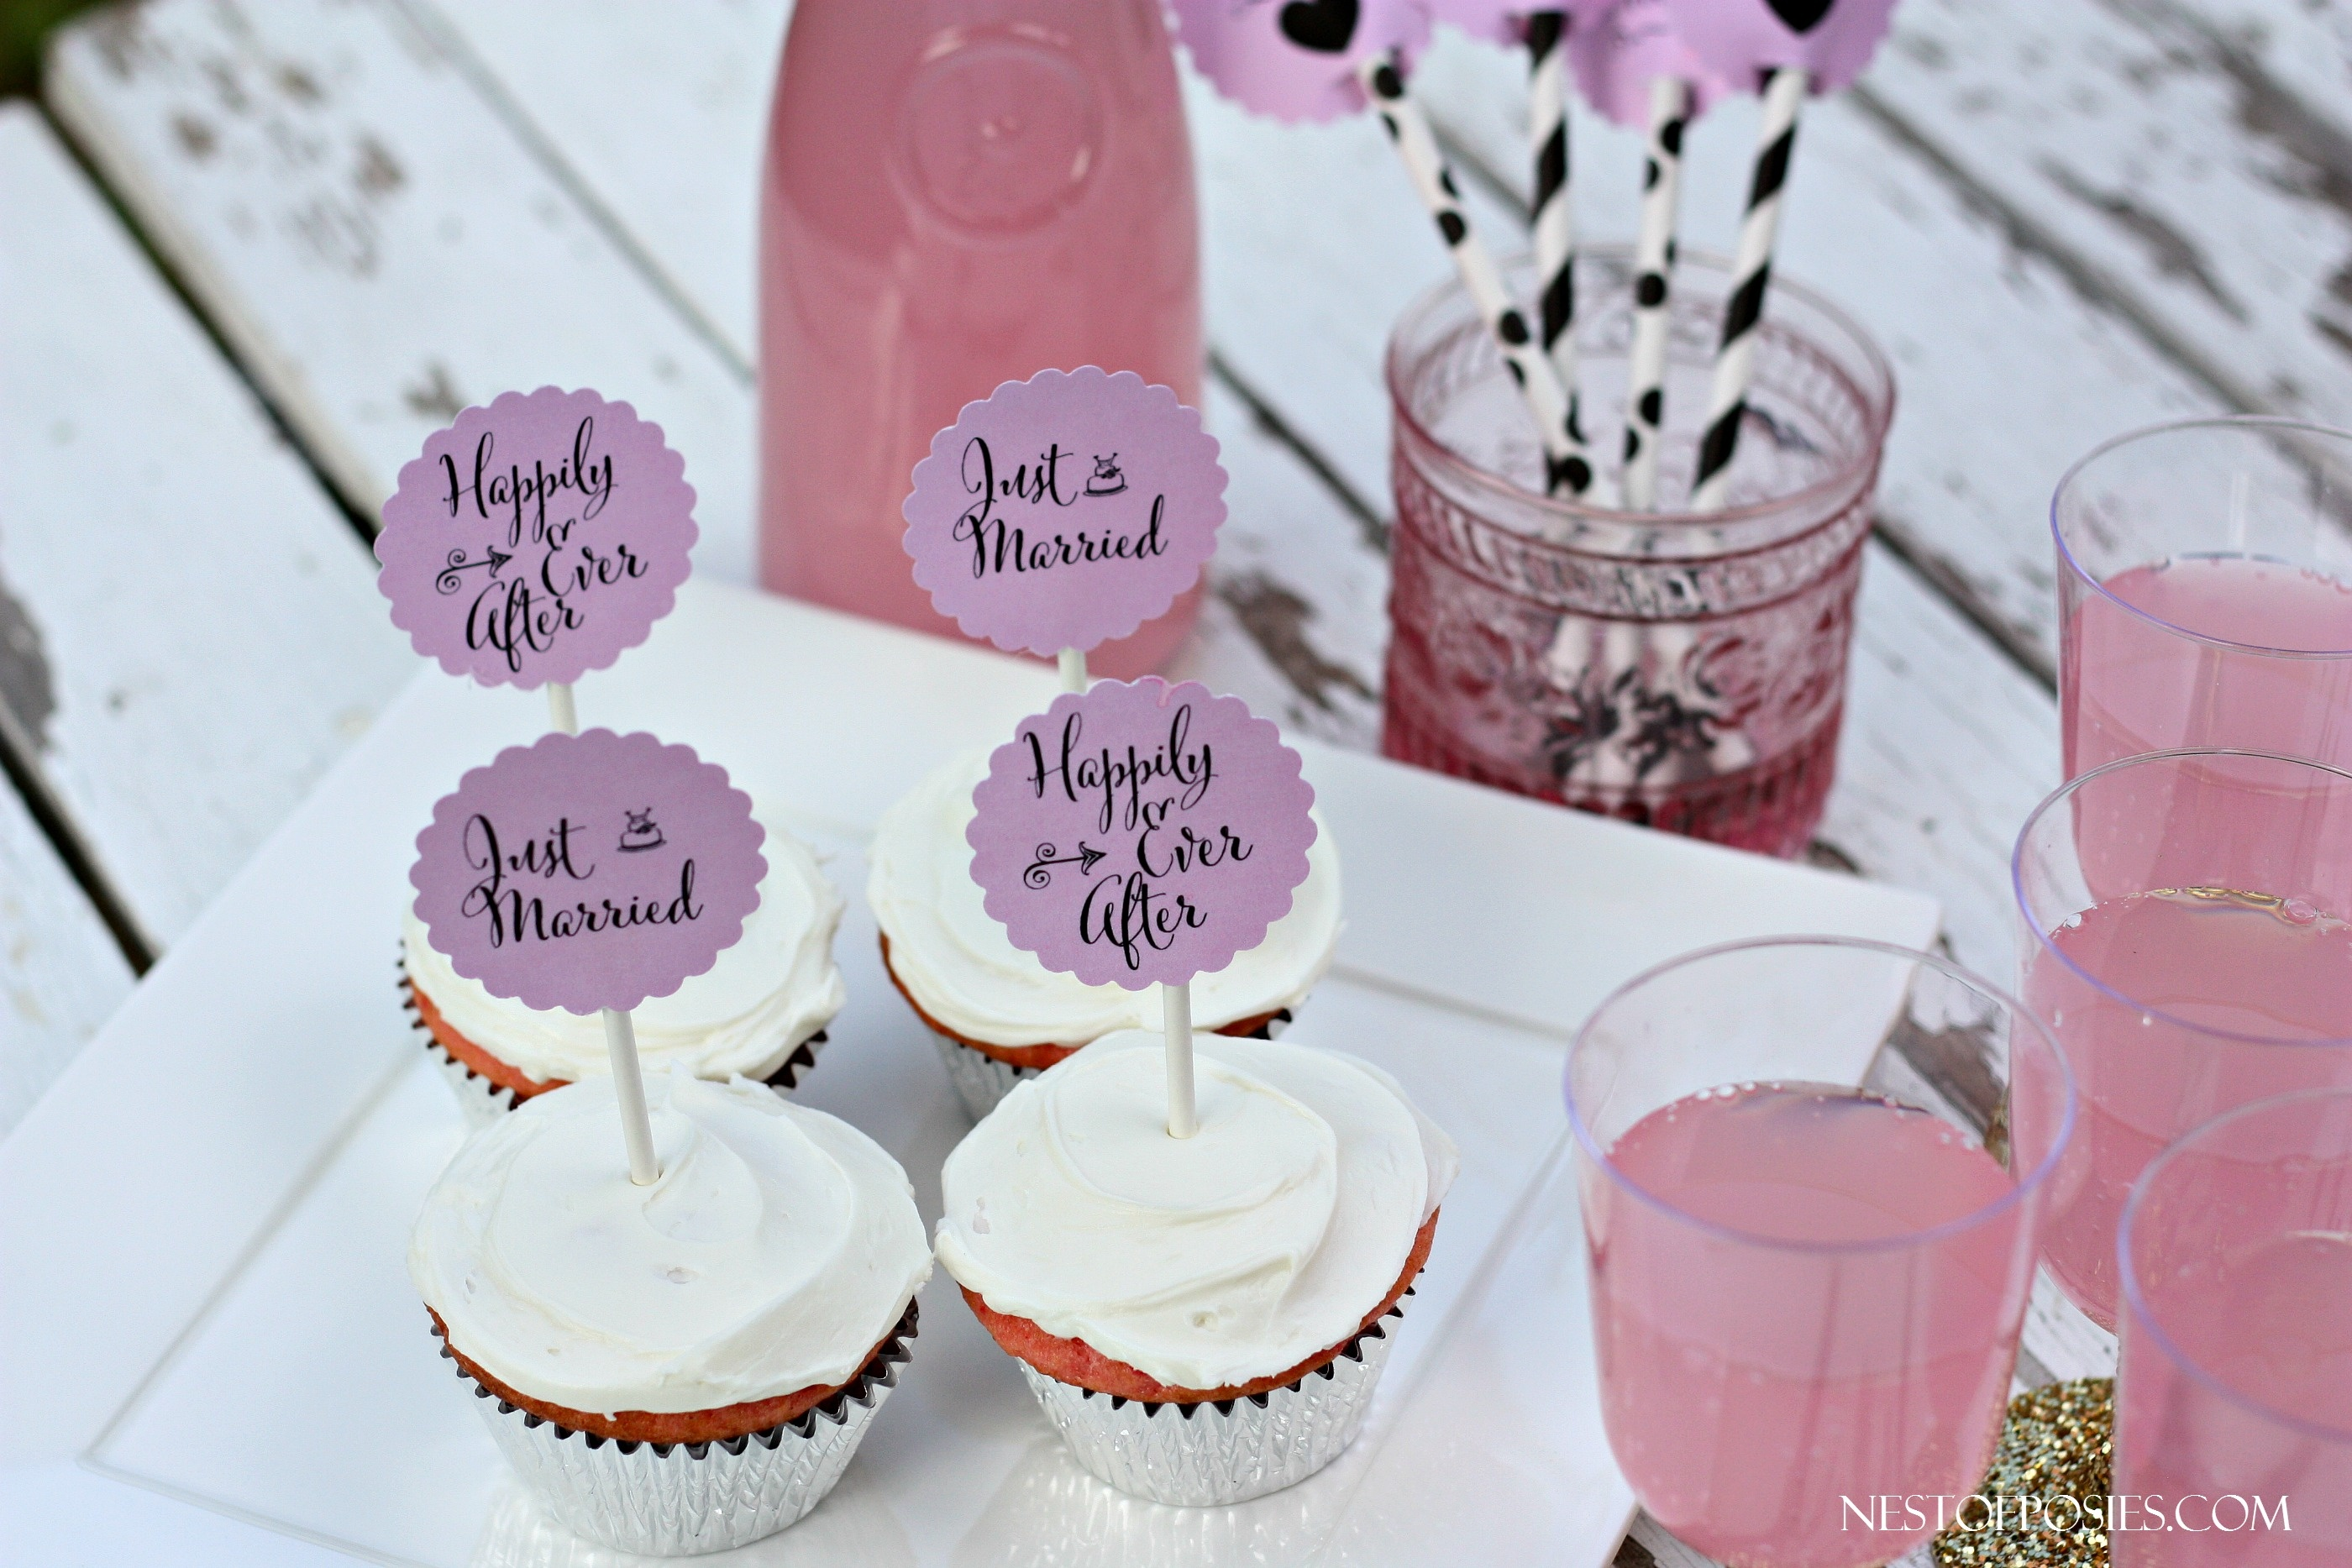 Wedding Or Bridal Shower Cupcake Toppers - Free Printable Cupcake Toppers Bridal Shower